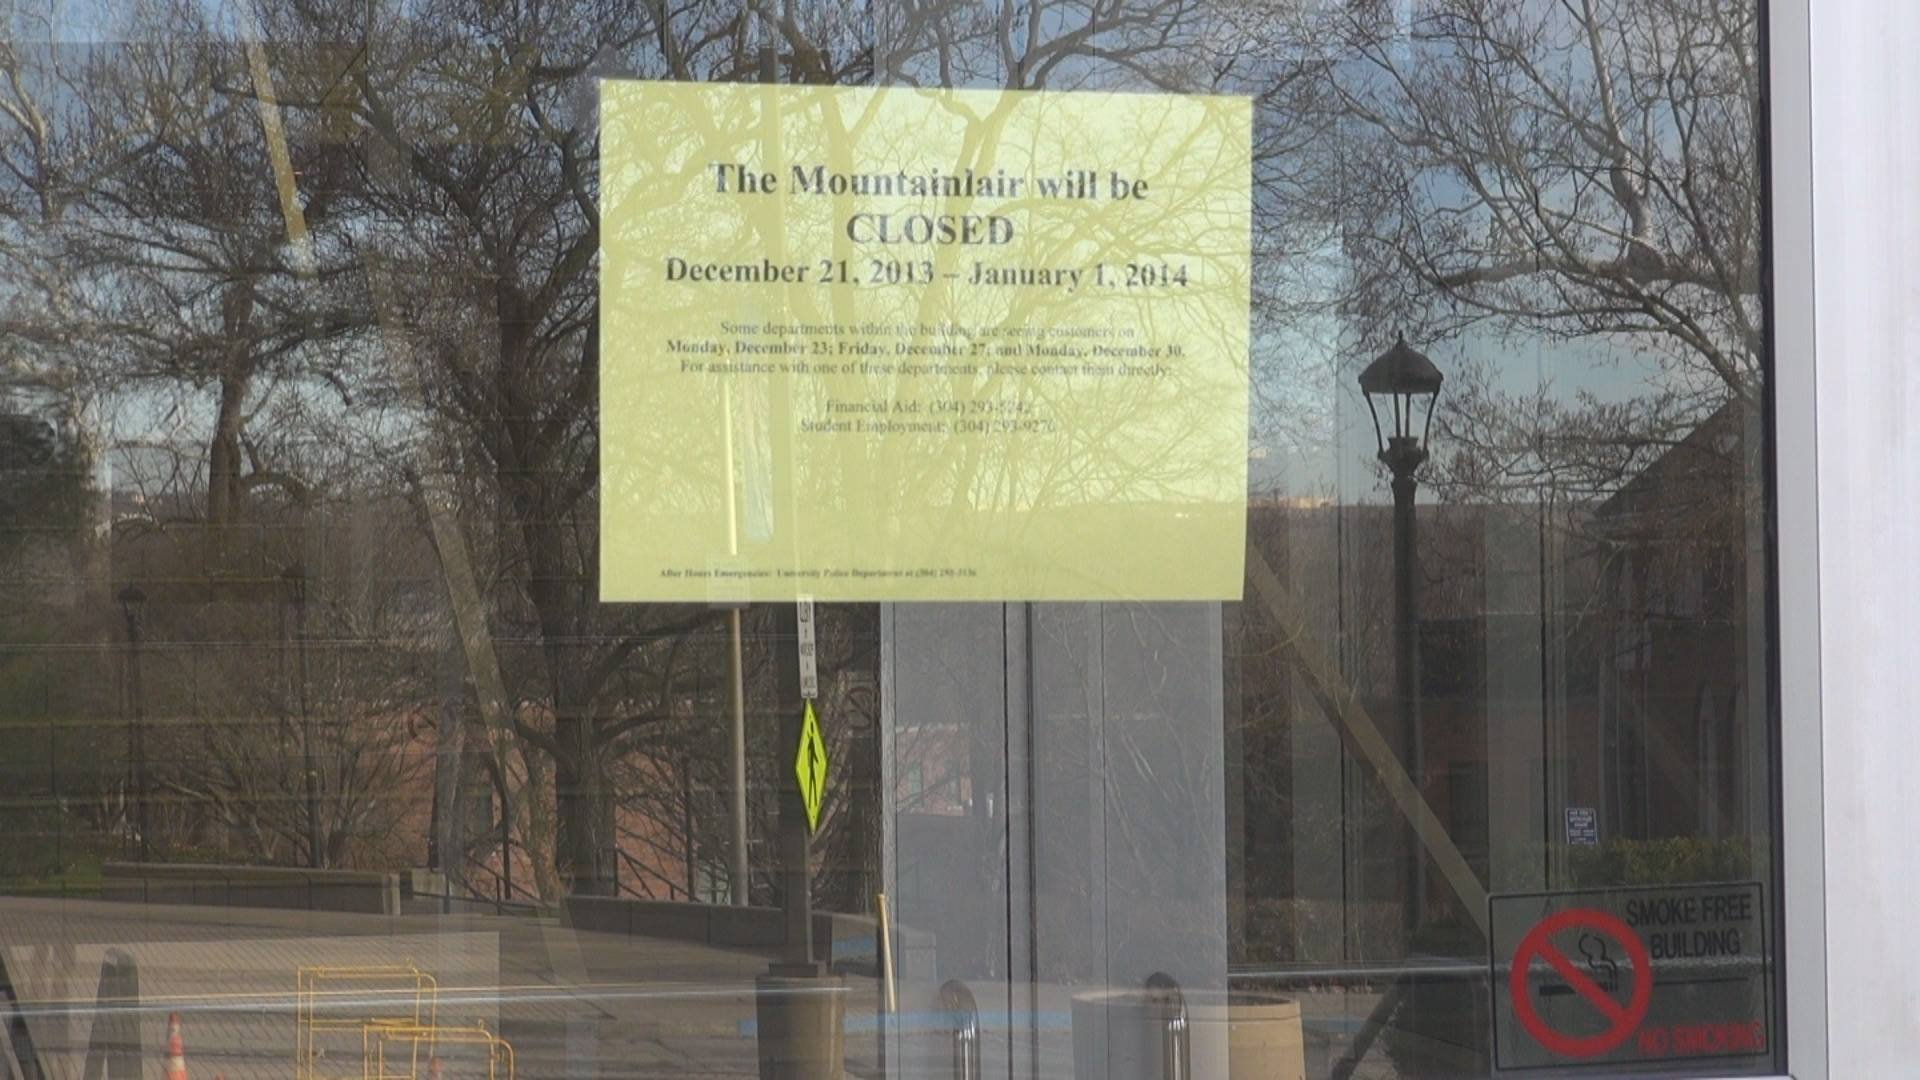 The Mountainlair, a popular place for WVU students to eat, is closed until January 1, 2014.